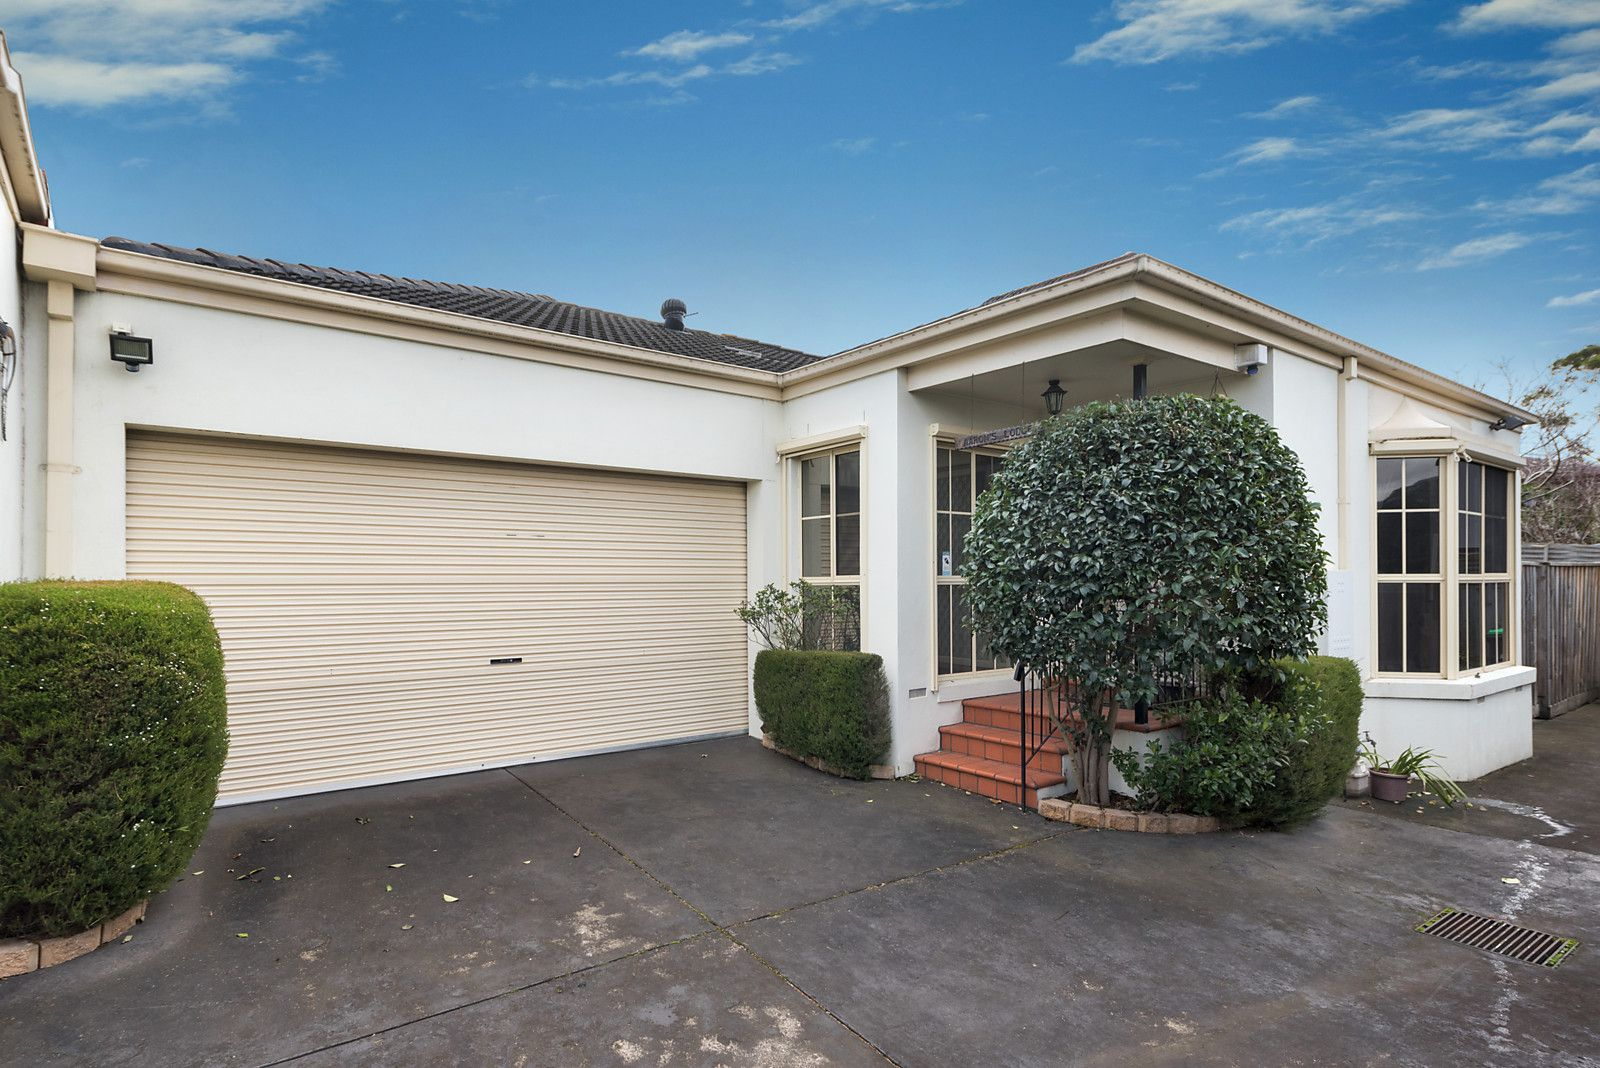 25A Minchinbury Drive, Vermont South VIC 3133, Image 0